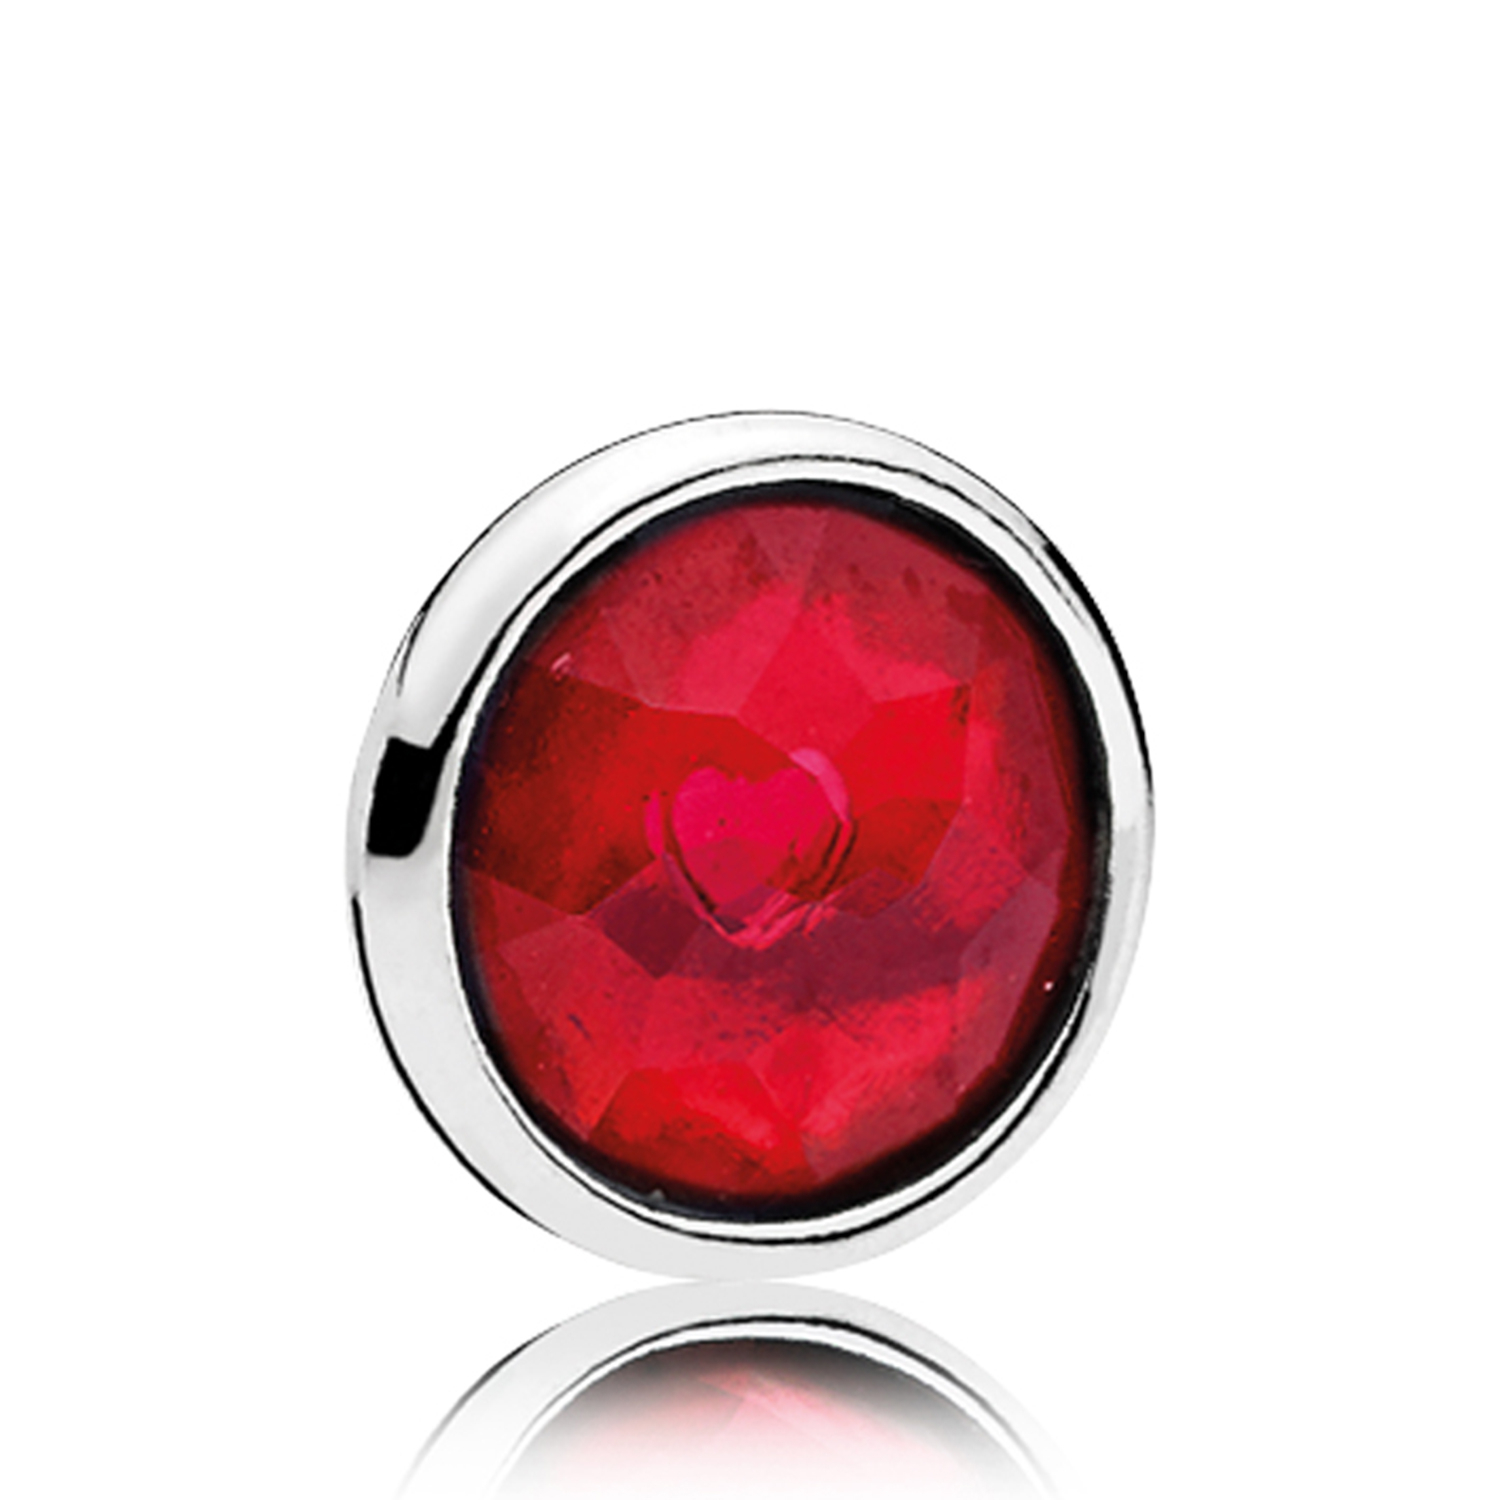 Pandora Petite Locket July Droplet Charm For 2019 July Droplet Pendant, Synthetic Ruby Necklaces (View 6 of 25)